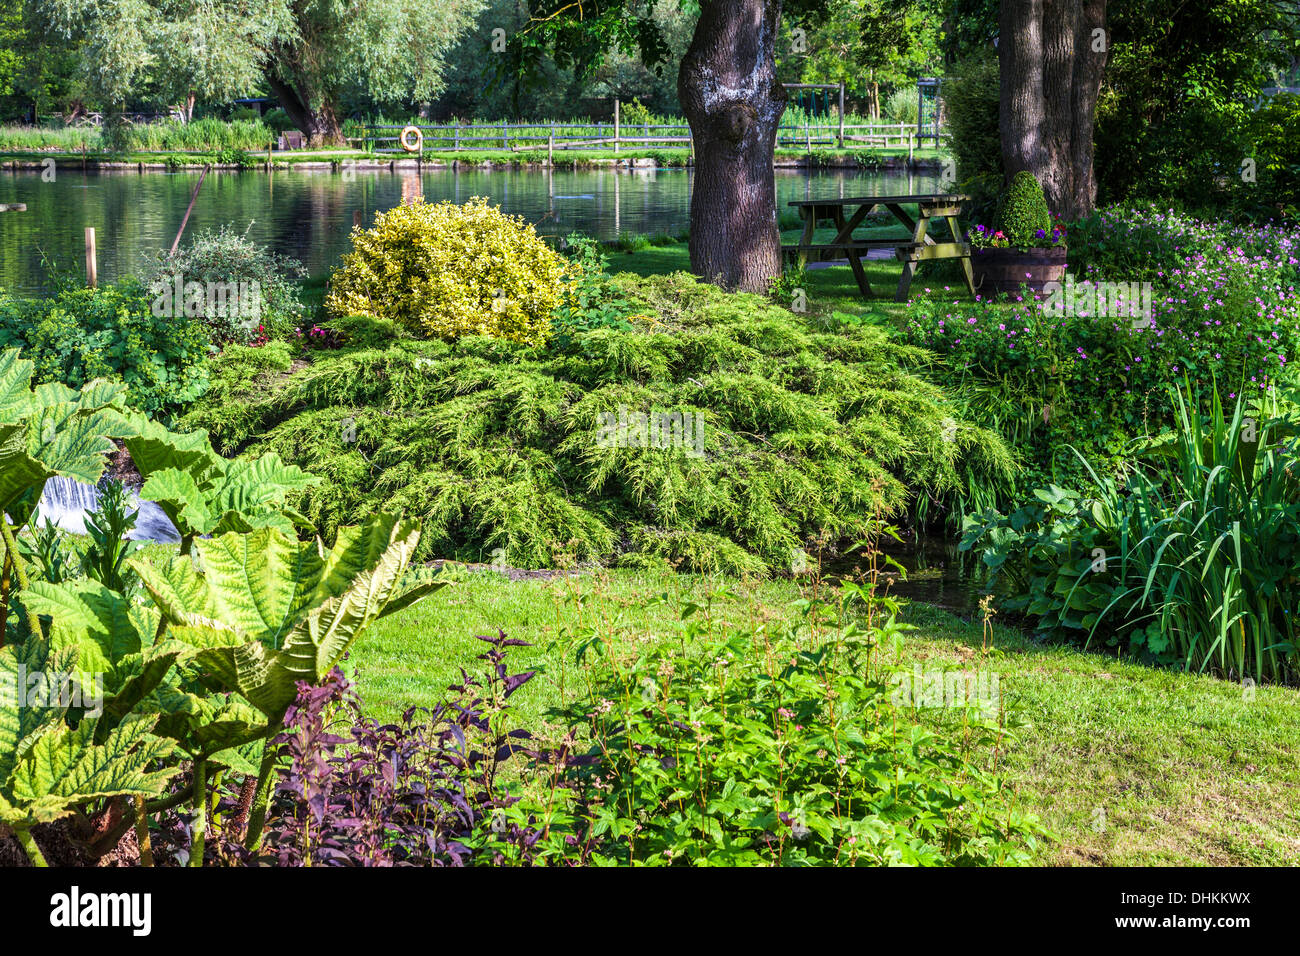 The pretty landscaped garden of the Trout Farm in the Cotswold village of Bibury in the Coln Valley. - Stock Image